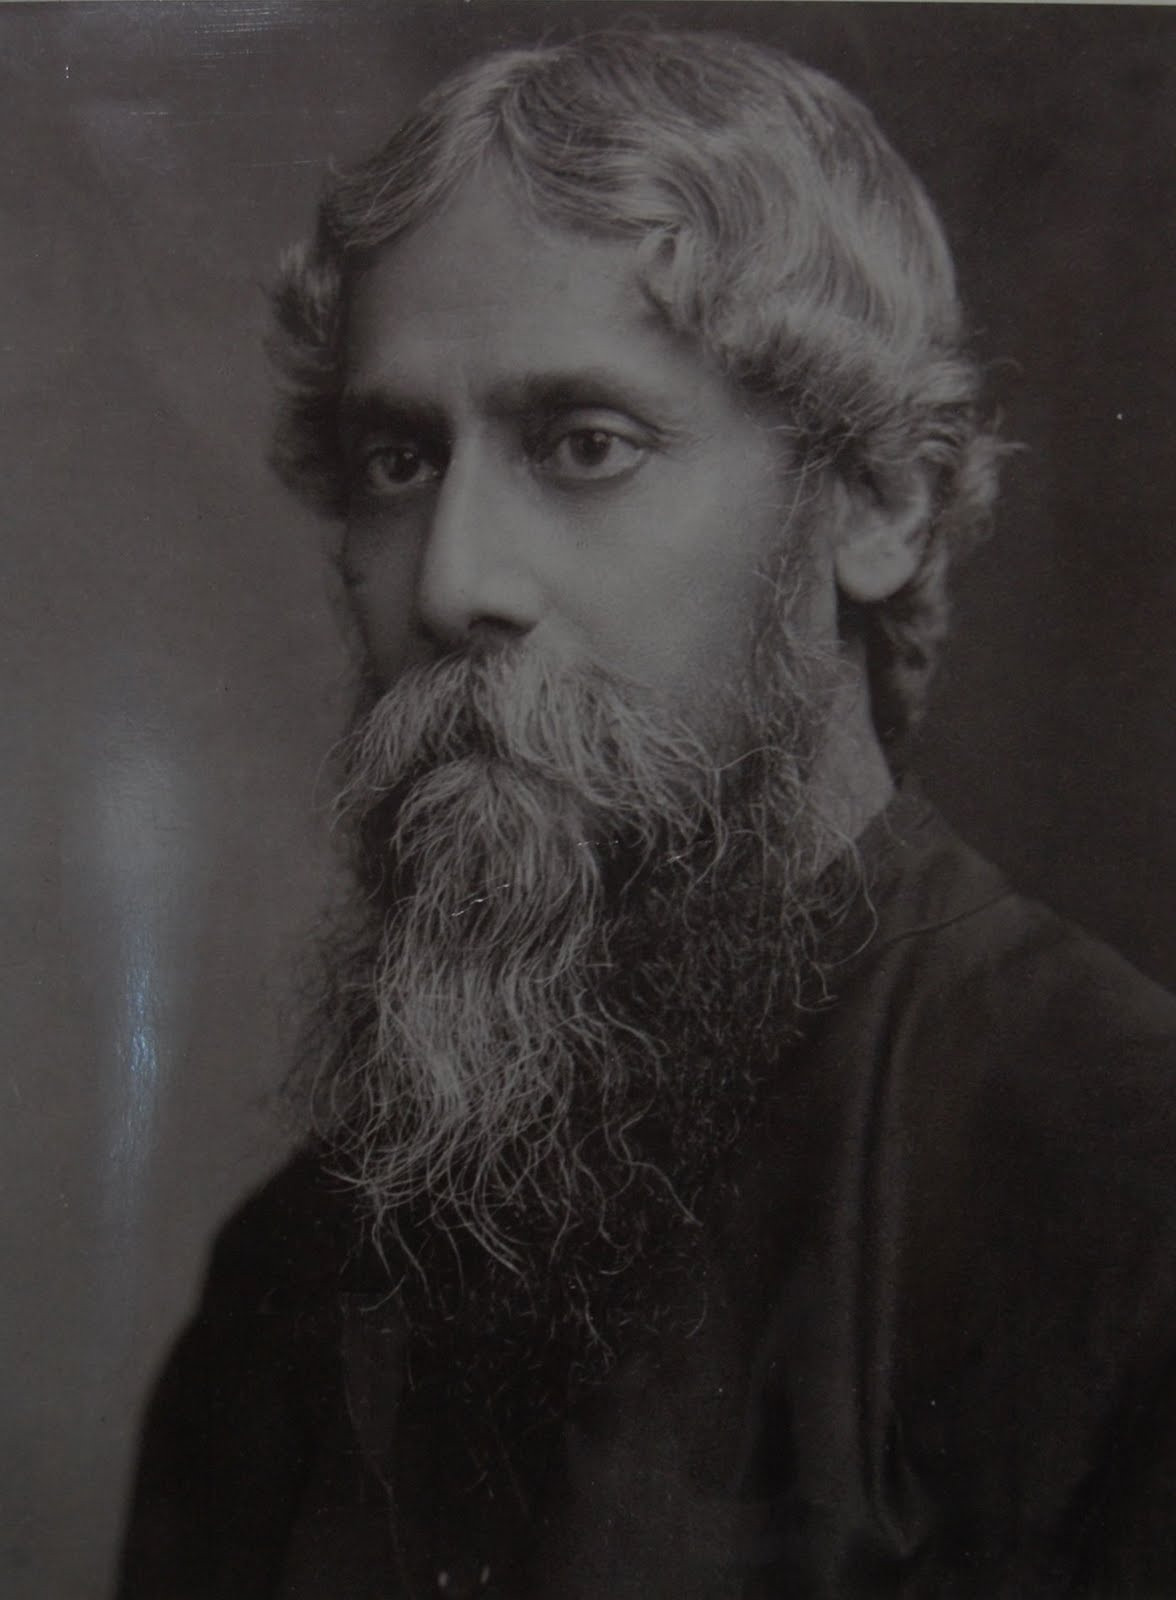 ravindra nath tagore About rabindranath tagore: awarded the nobel prize in literature in 1913  because of his profoundly sensitive, fresh and beautiful verse, by which, with.